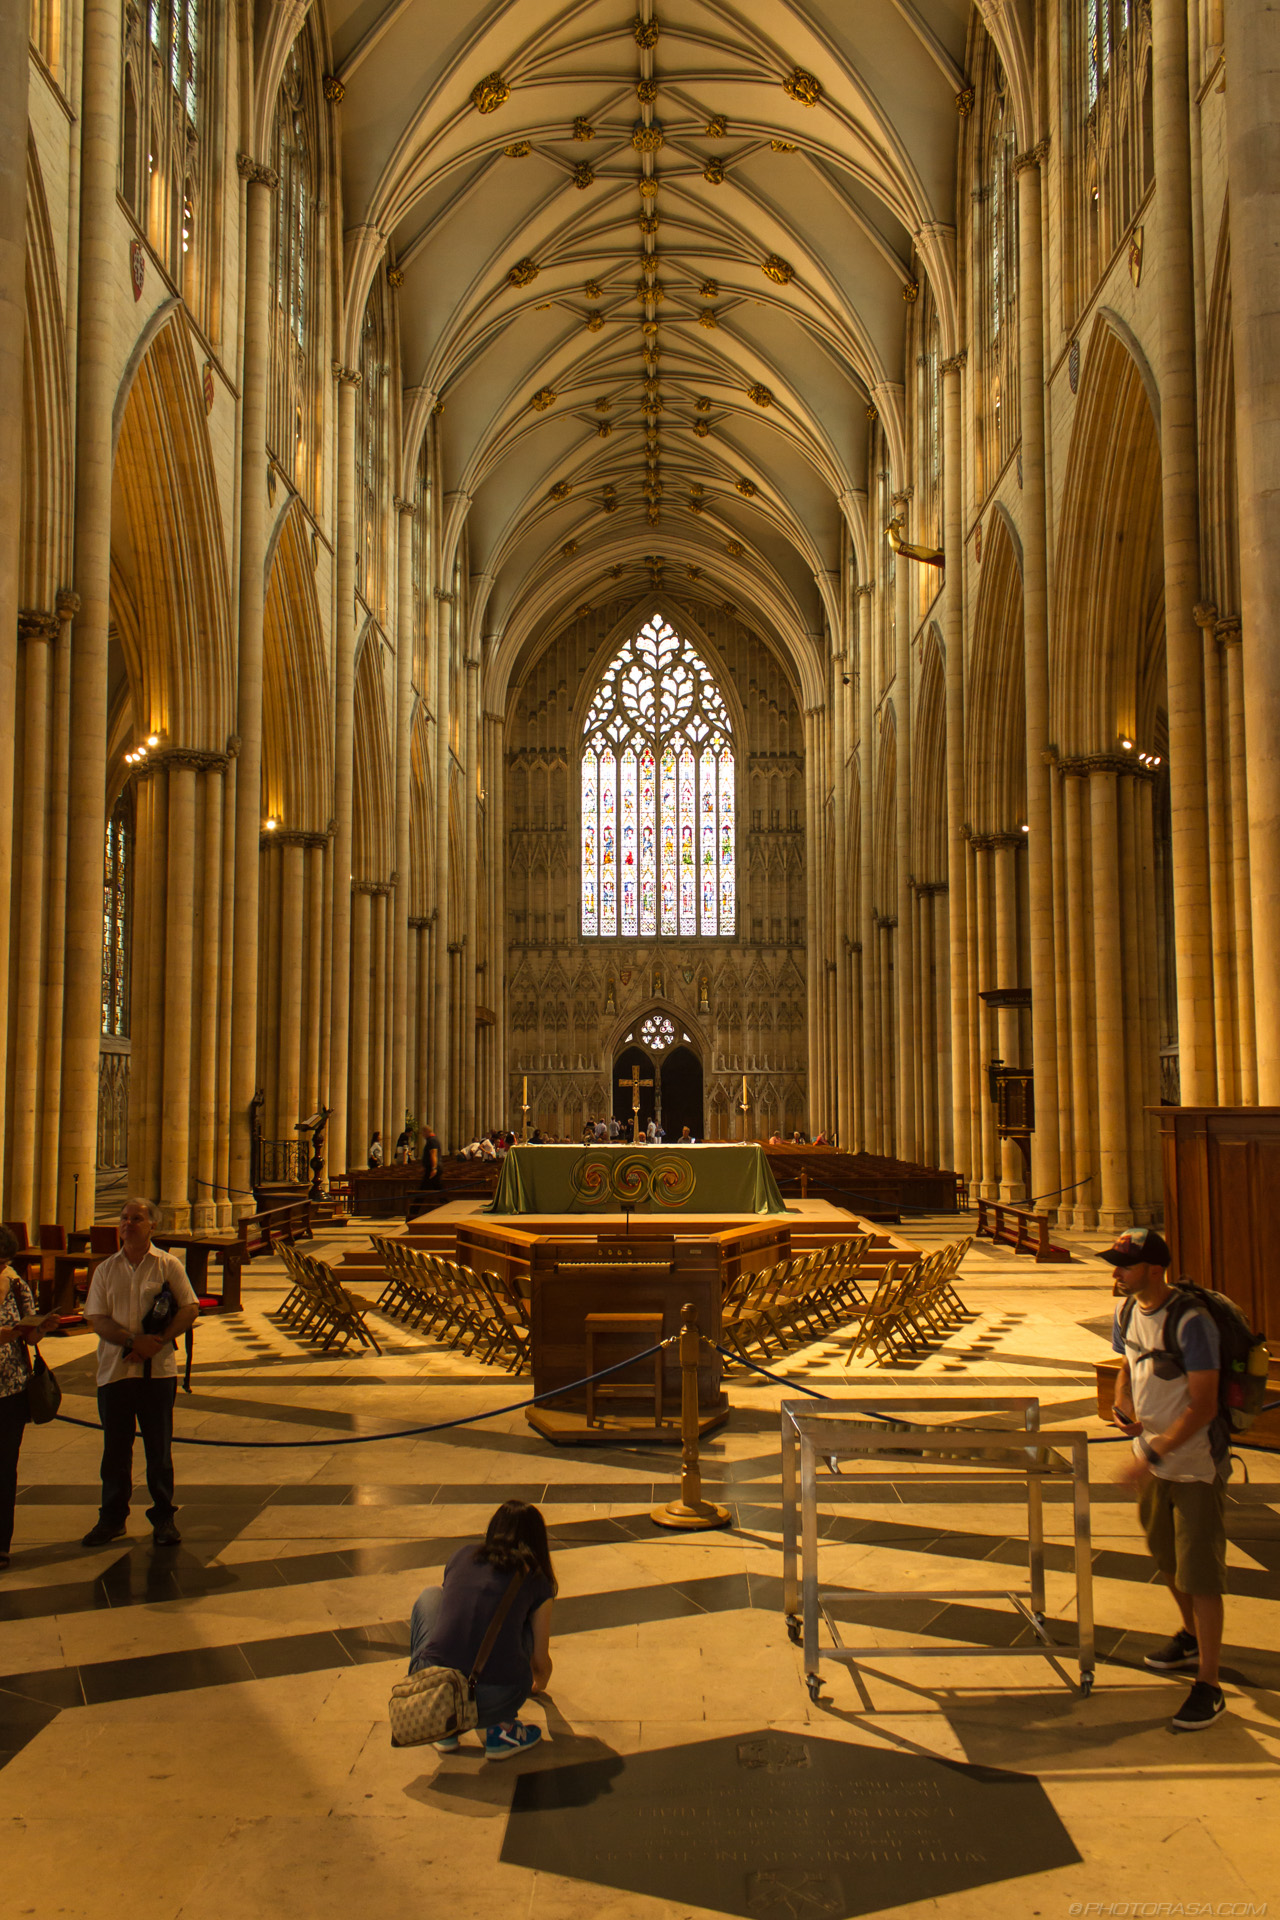 https://photorasa.com/yorkminster-cathedral/the-nave-from-the-east/